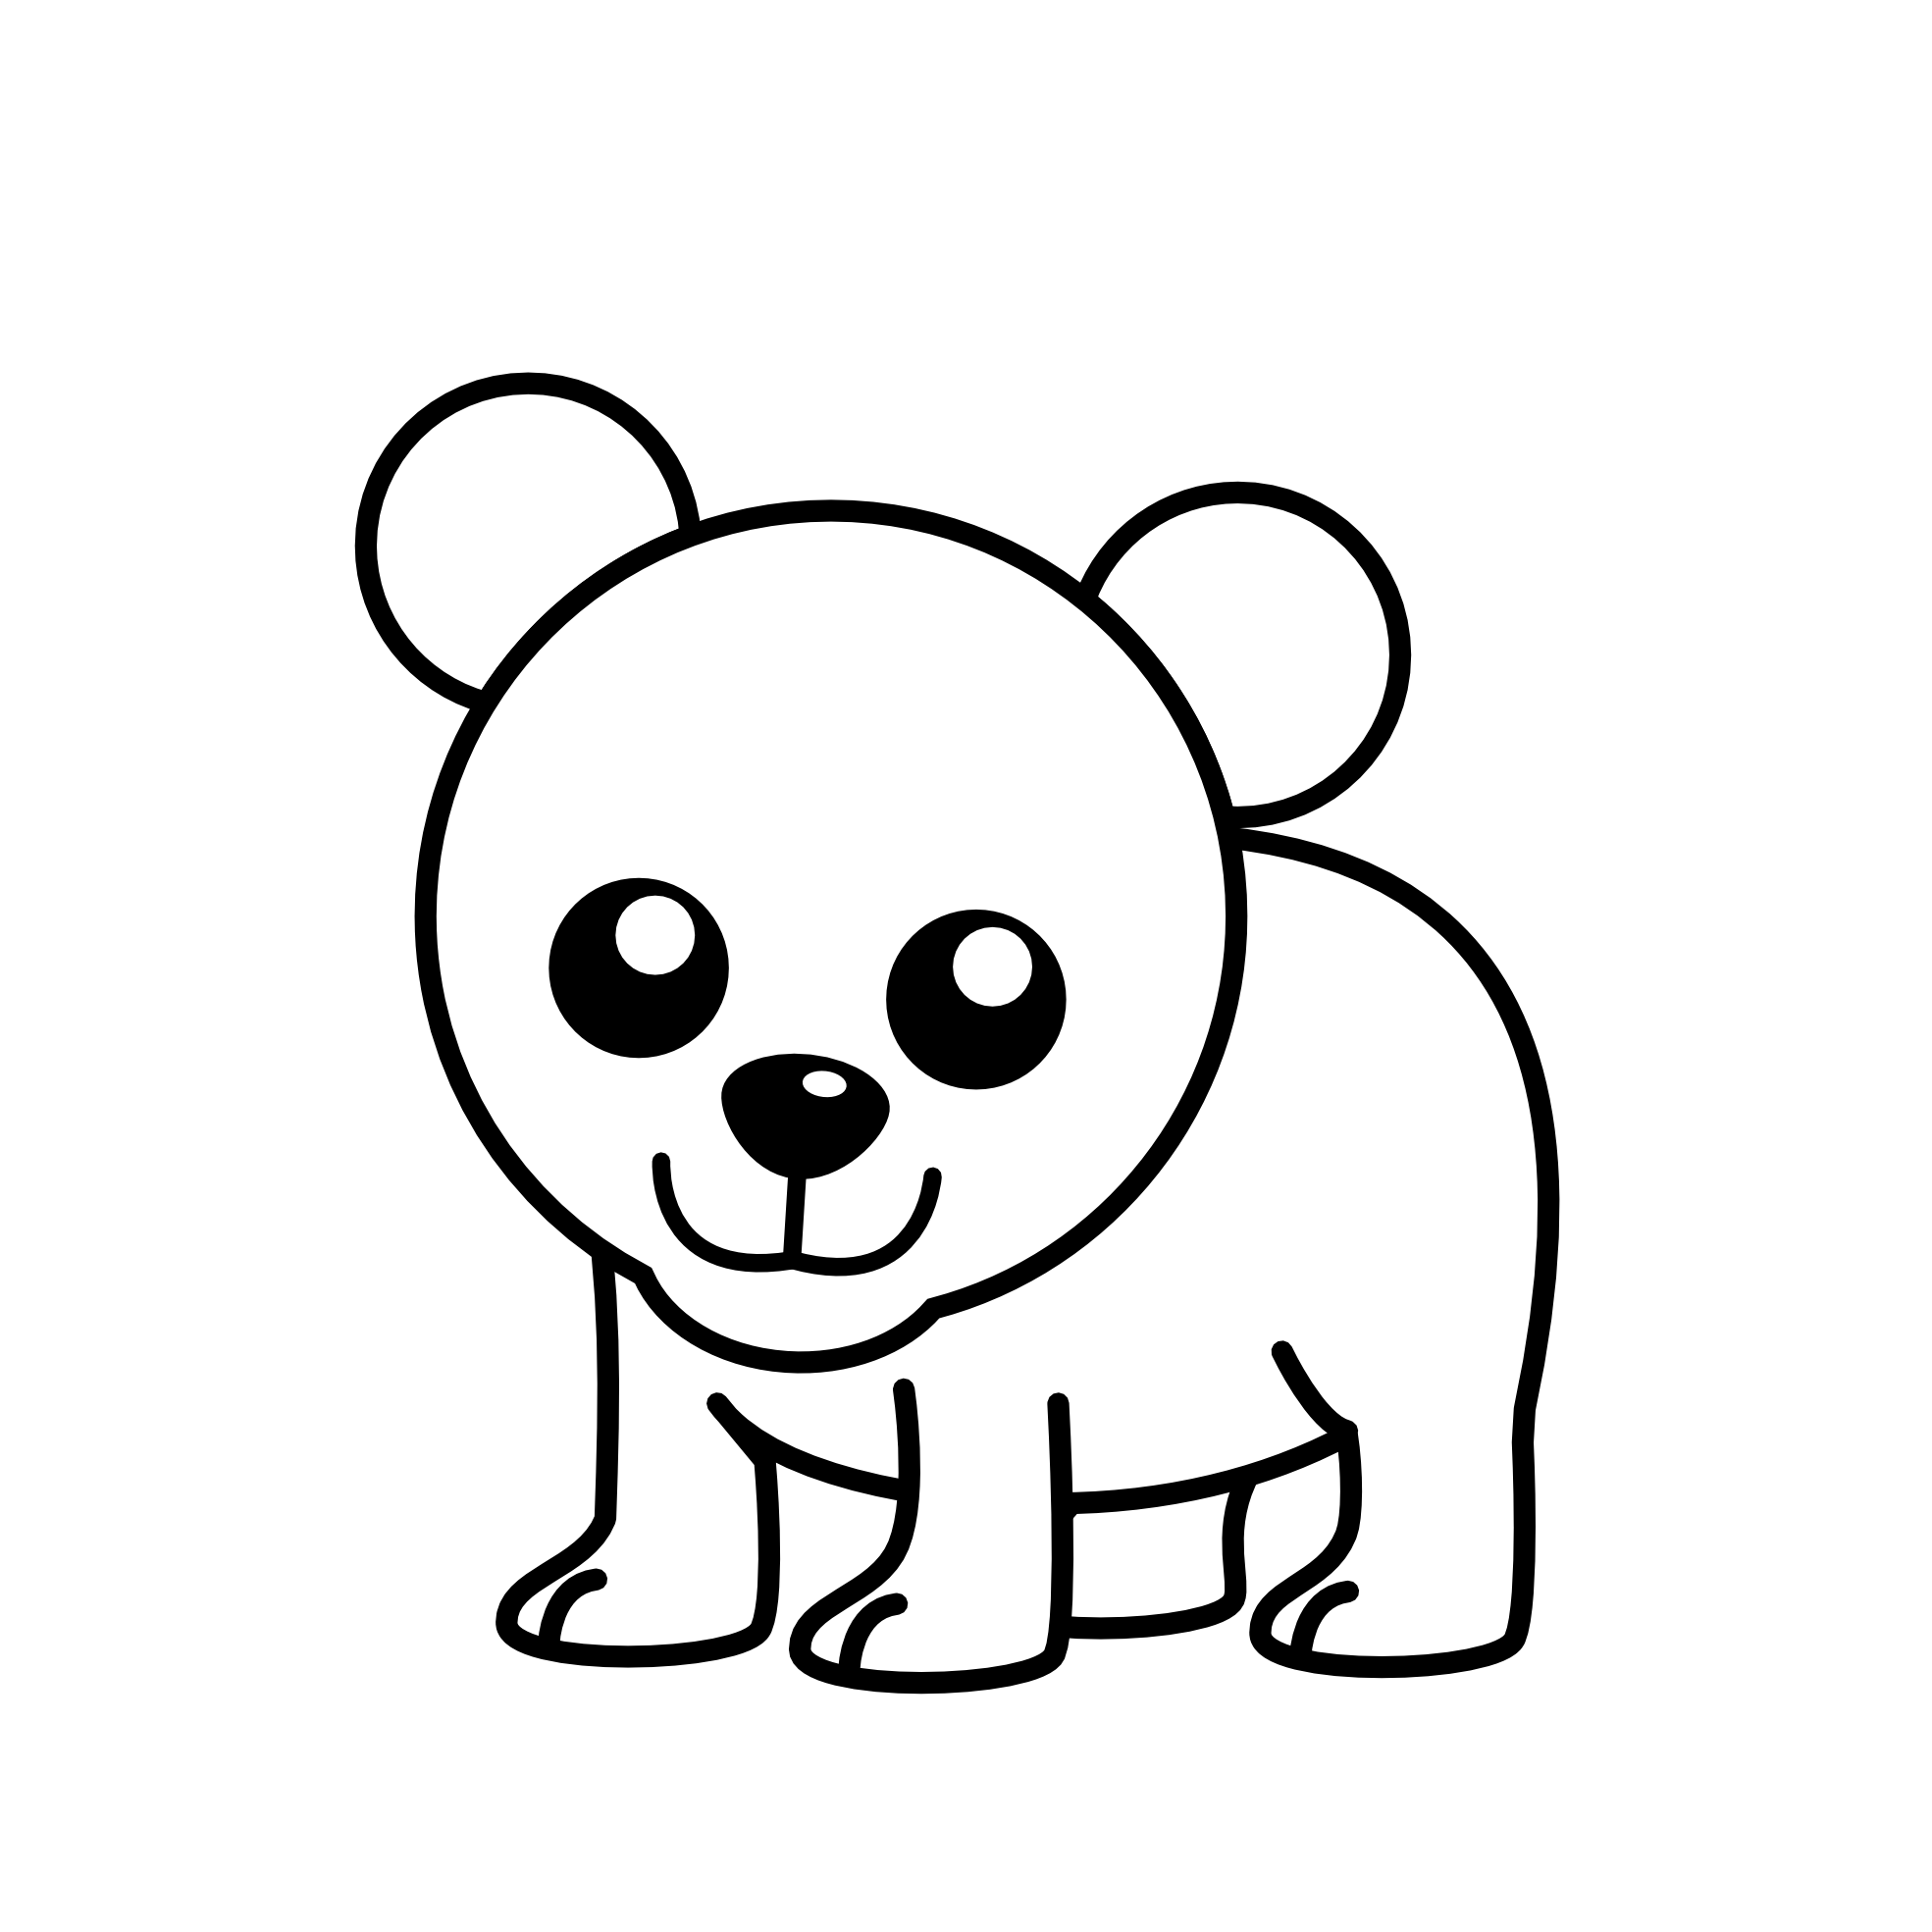 Free Bear Cub Clipart Black And White, Download Free Clip.